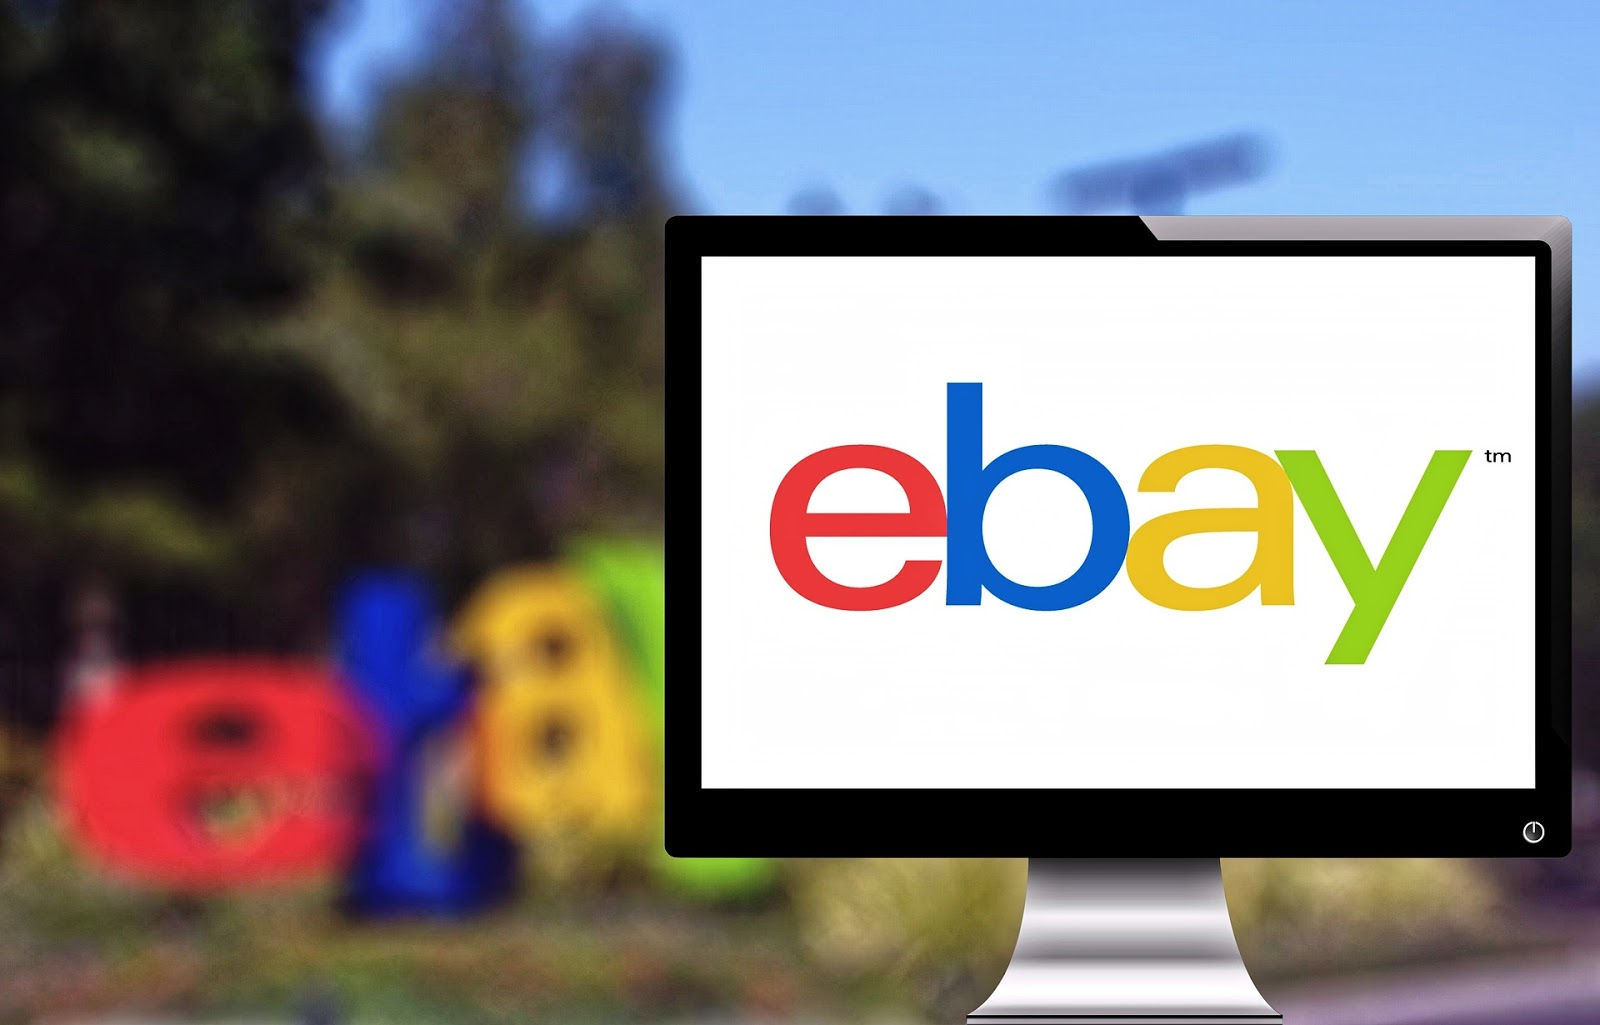 The Best Product to Sell on eBay